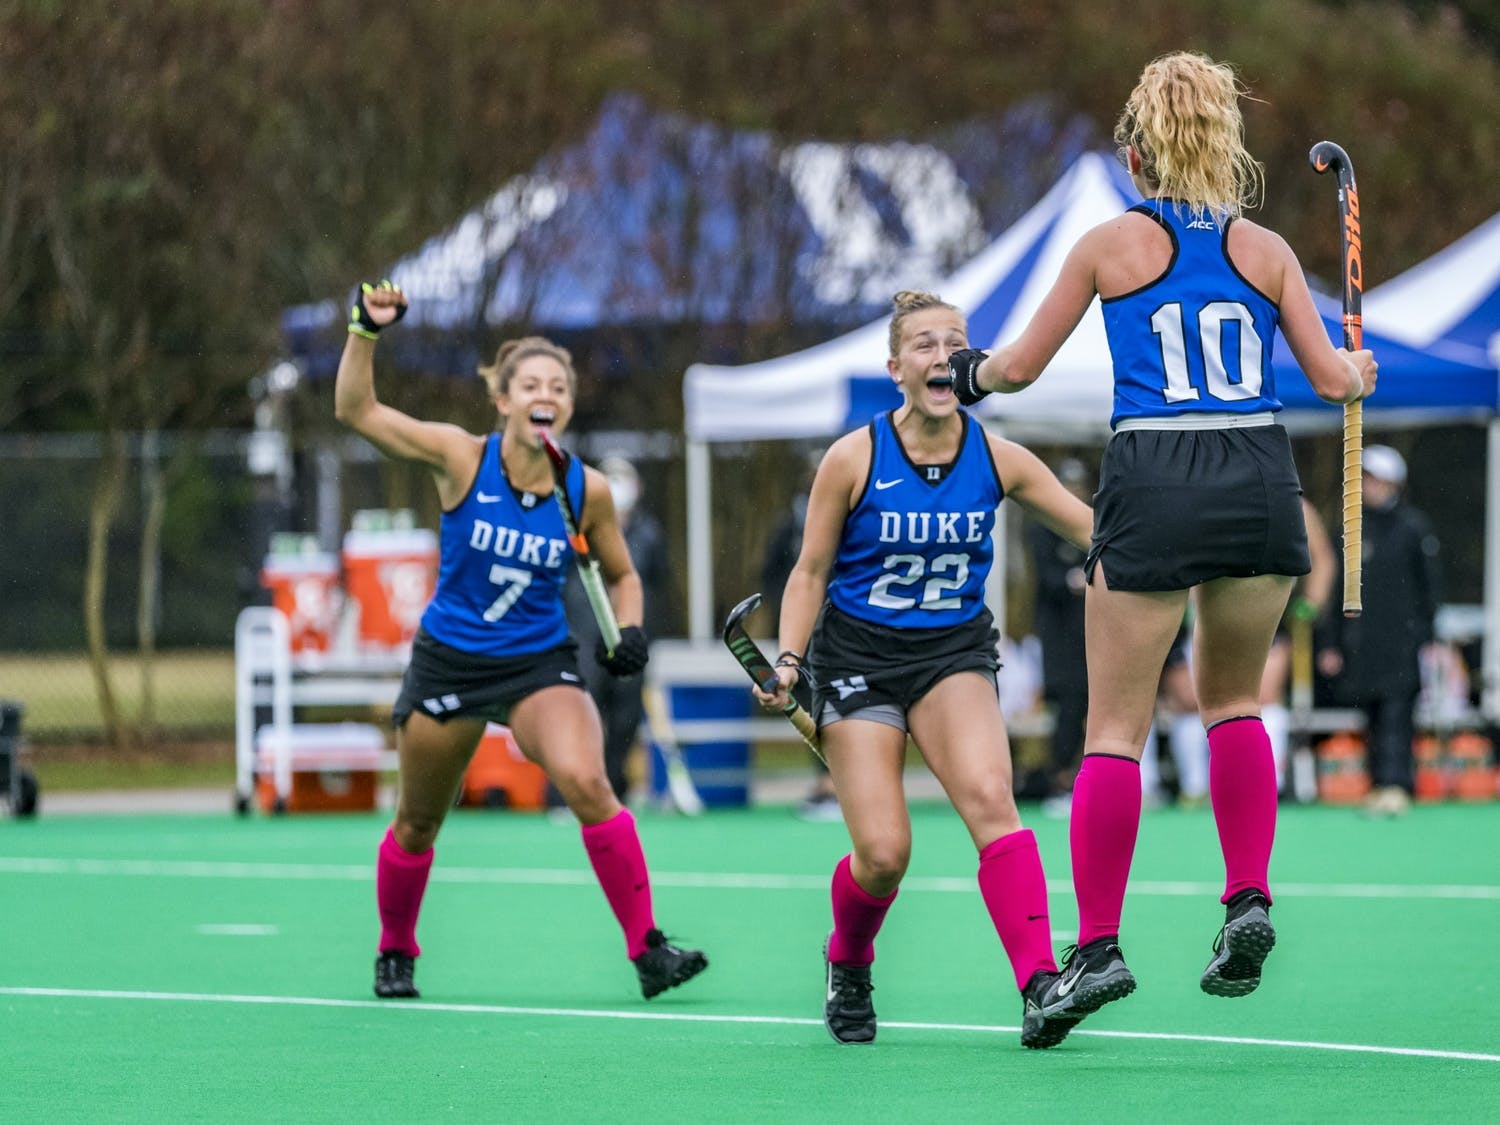 Duke has its first game Friday against Rutgers at 6 p.m.